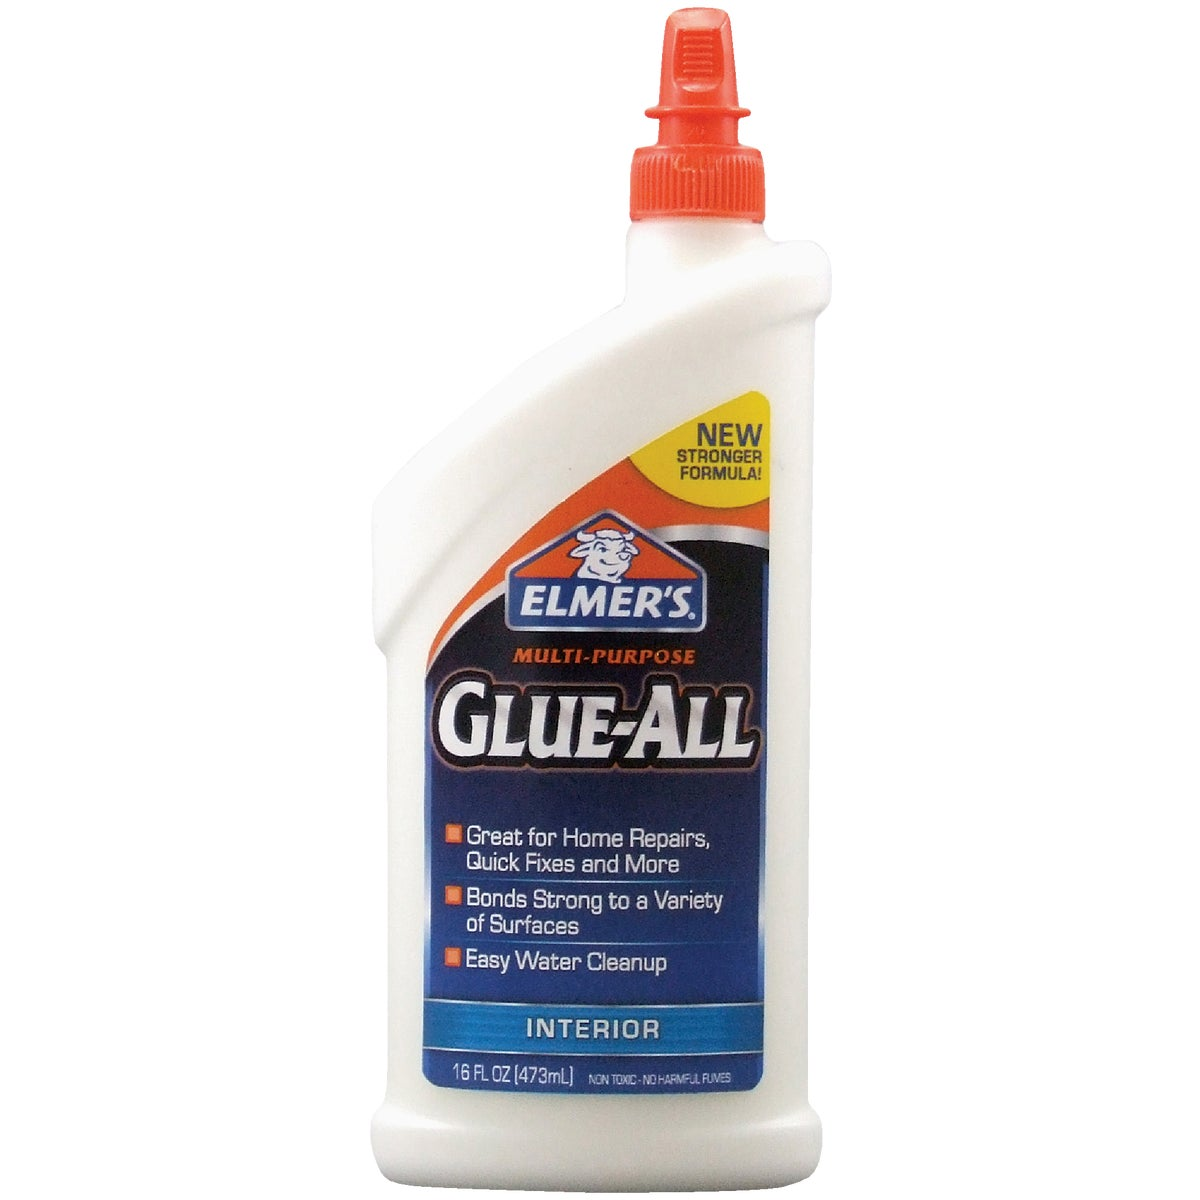 16OZ GLUE-ALL - E3830 by Elmers Products Inc